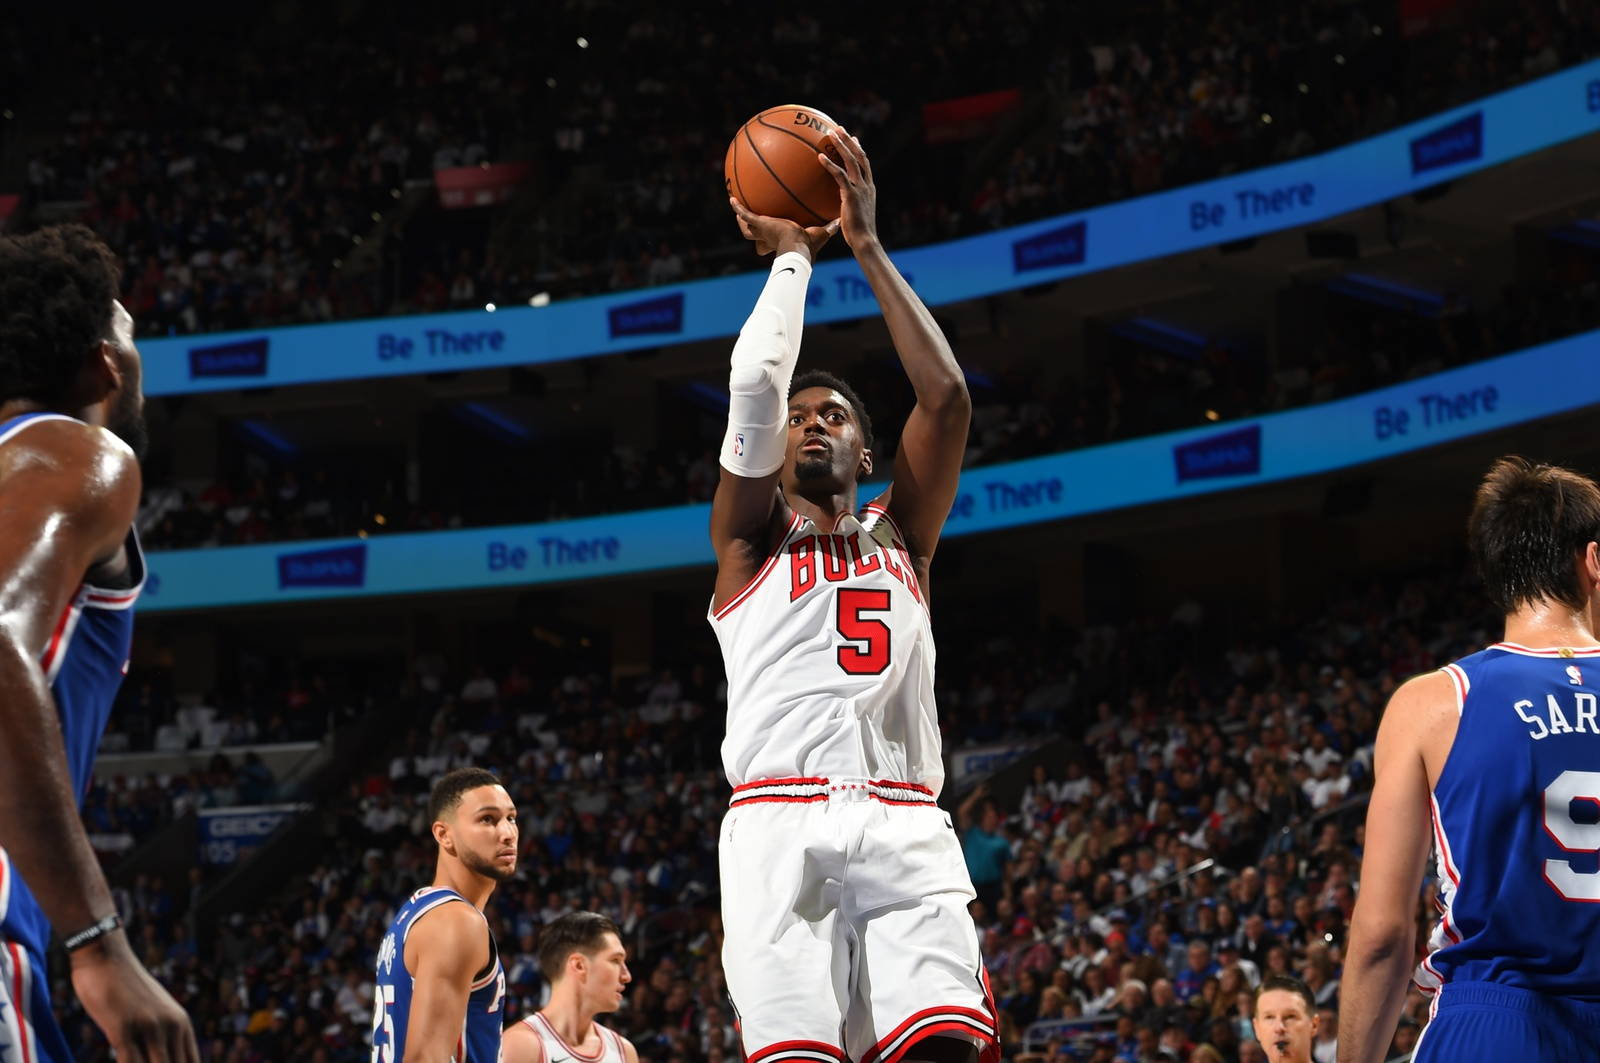 Bobby Portis shooting the ball in the Bulls' season opener against the Philadelphia 76ers, October 18, 2018